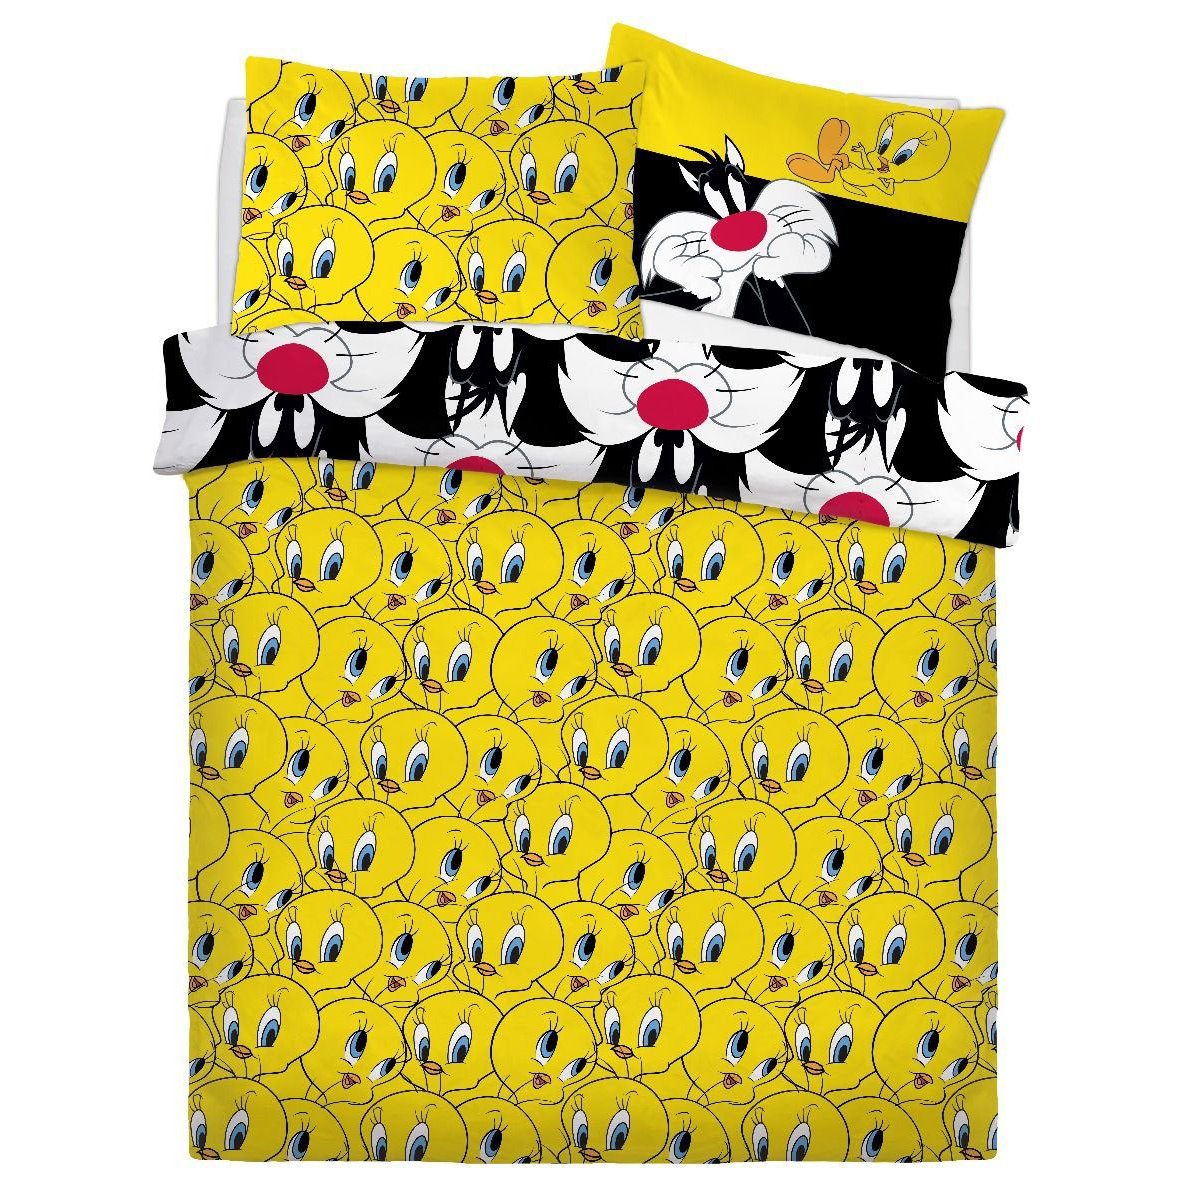 Looney Tunes Sylvester & Tweety Bedding - Reversible Duvet Cover and Pillowcase Set